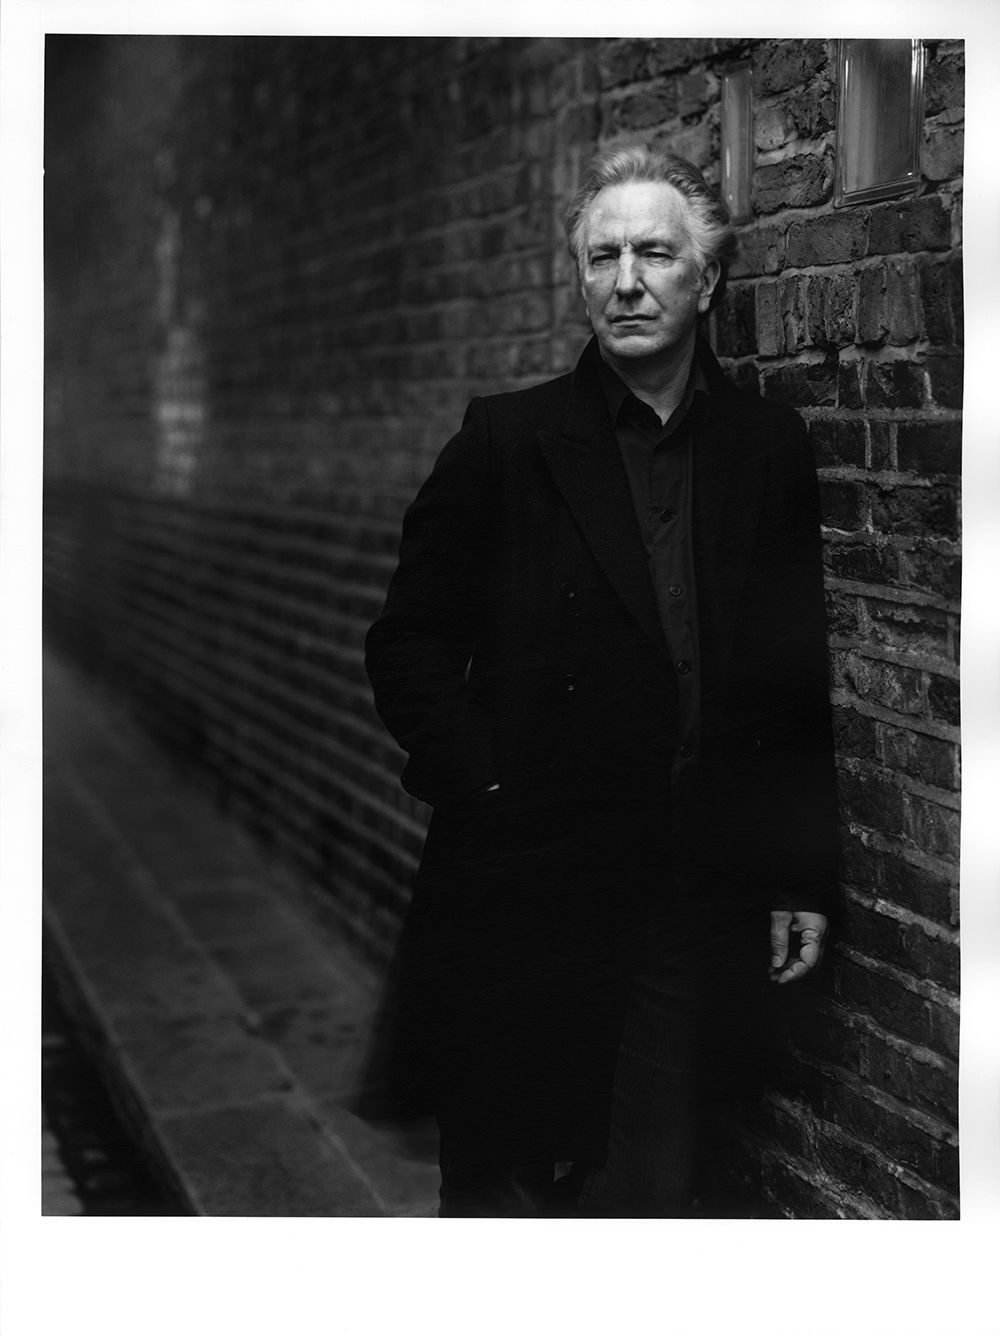 bafta-film: Alan Rickman, pictured for a Past Winners photoshoot ...